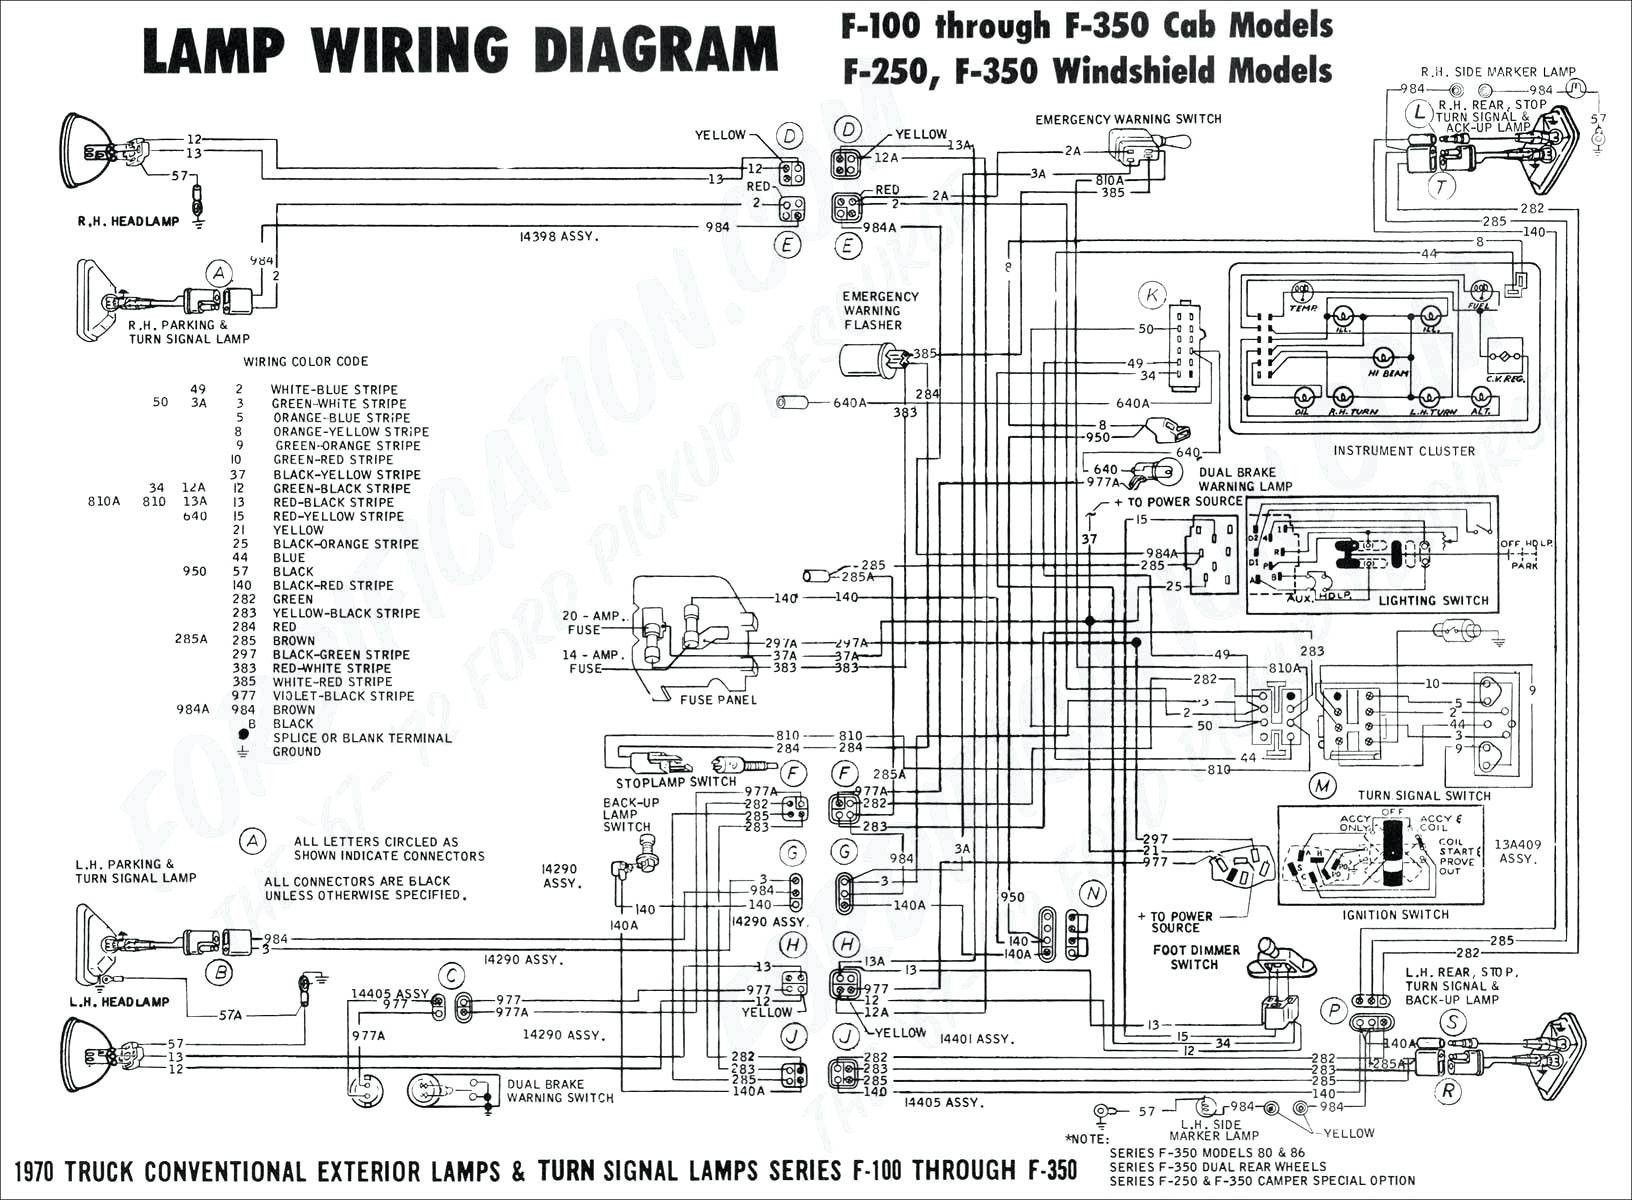 Mercury Outboard Ignition Diagram 64 Cadillac Wiring Diagram Wiring Diagram Data Of Mercury Outboard Ignition Diagram